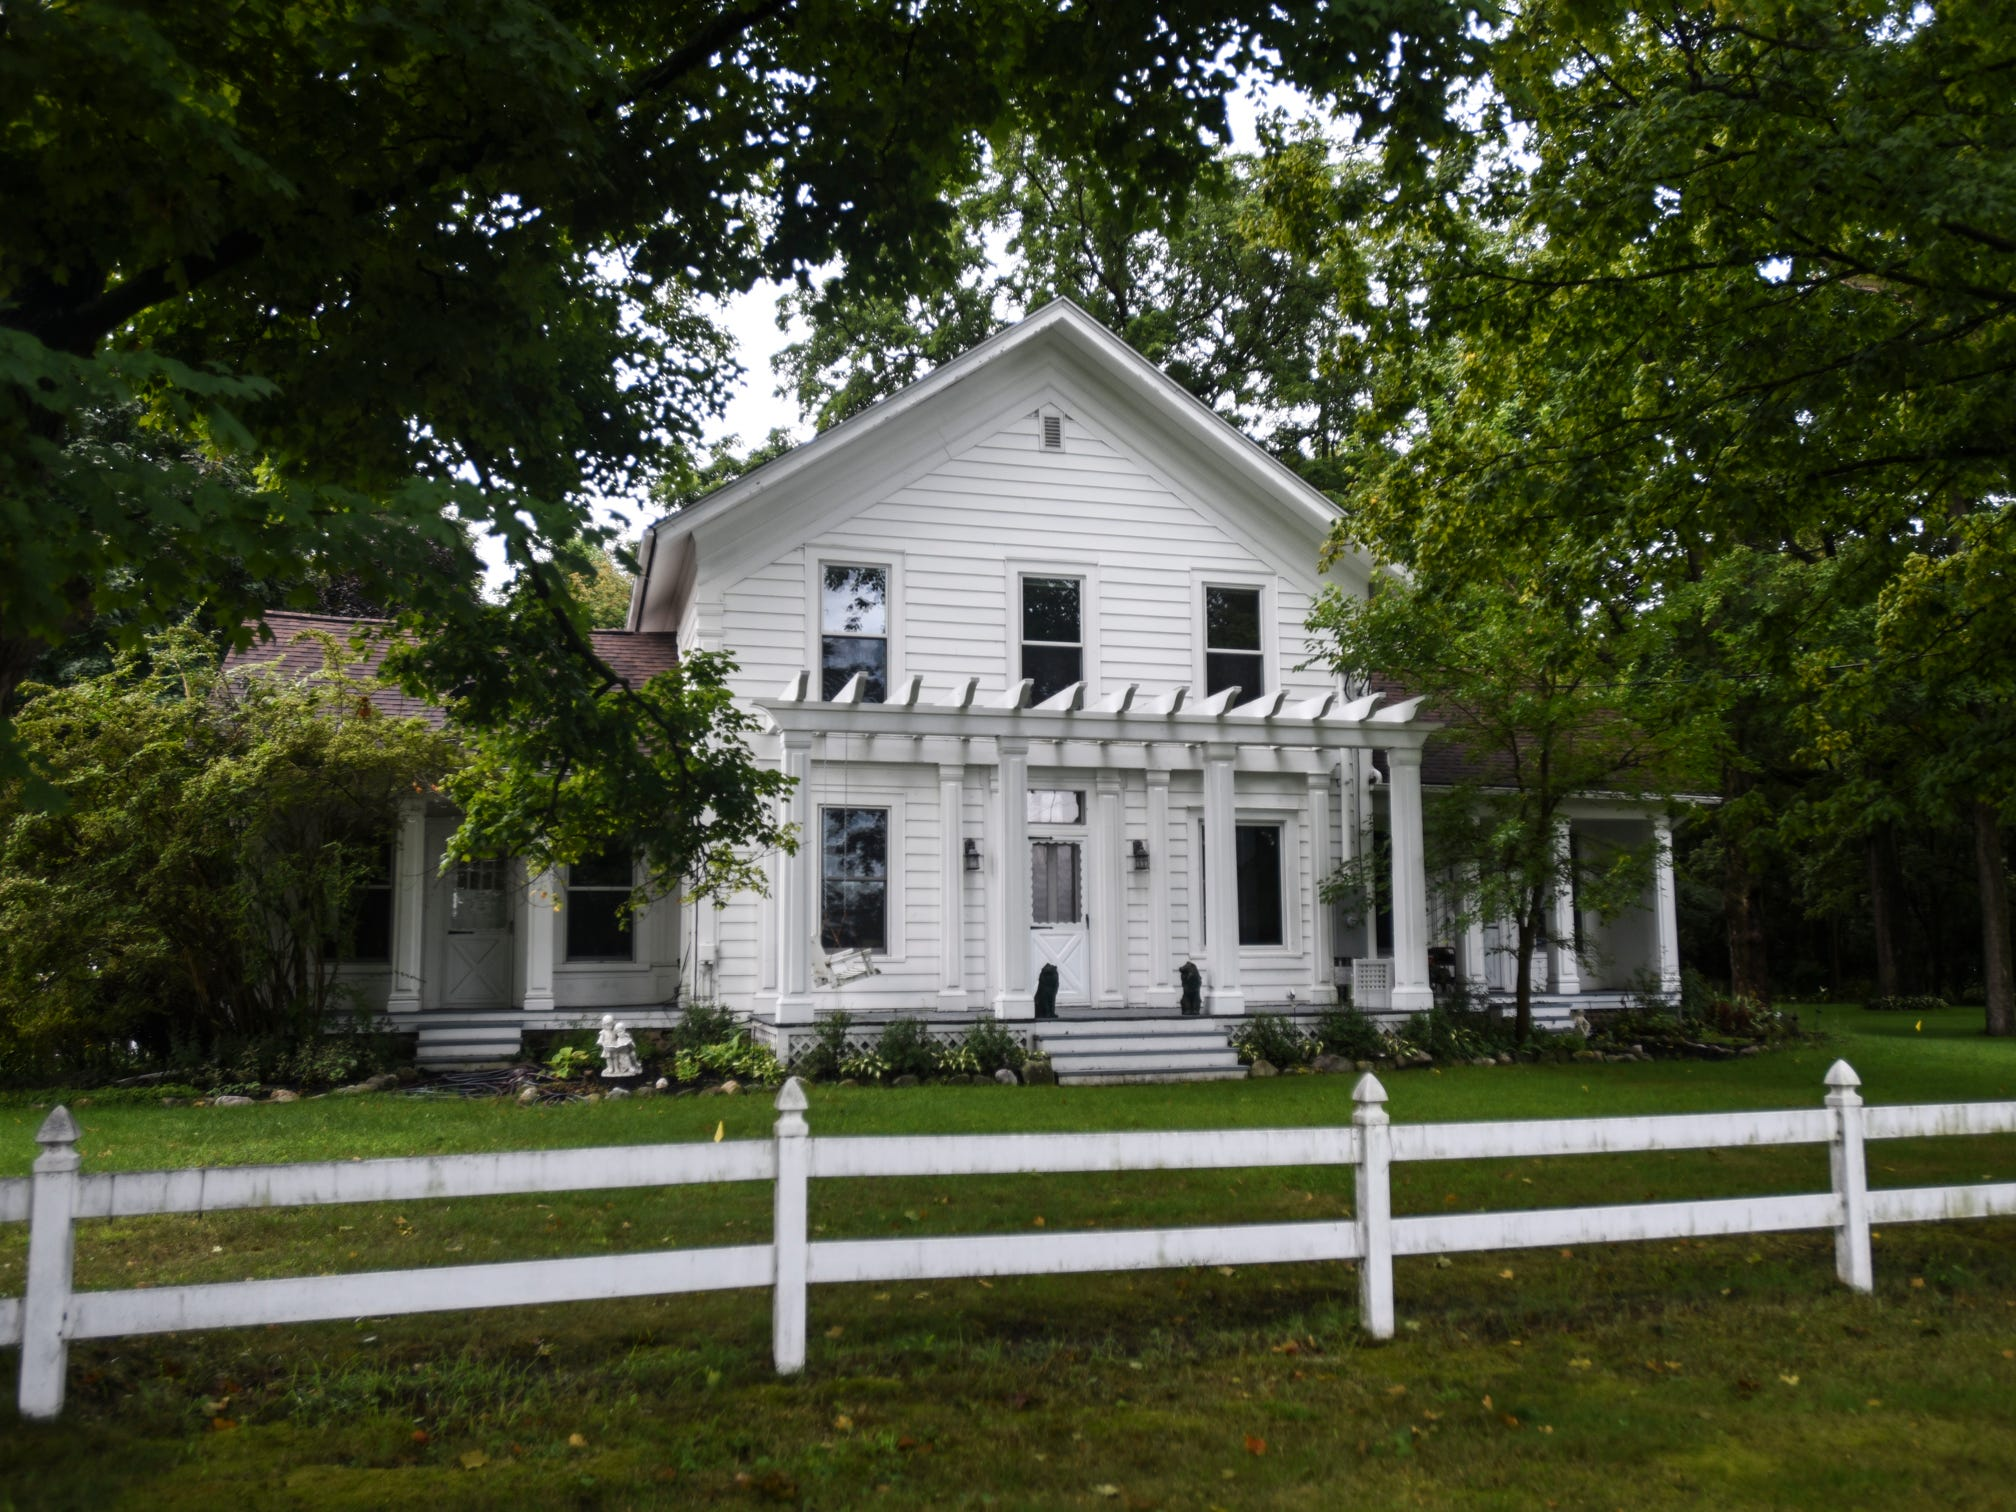 An exterior of the historic Shaft homestead in Shaftsburg.  The five bedroom farmhouse  was built in 1846.